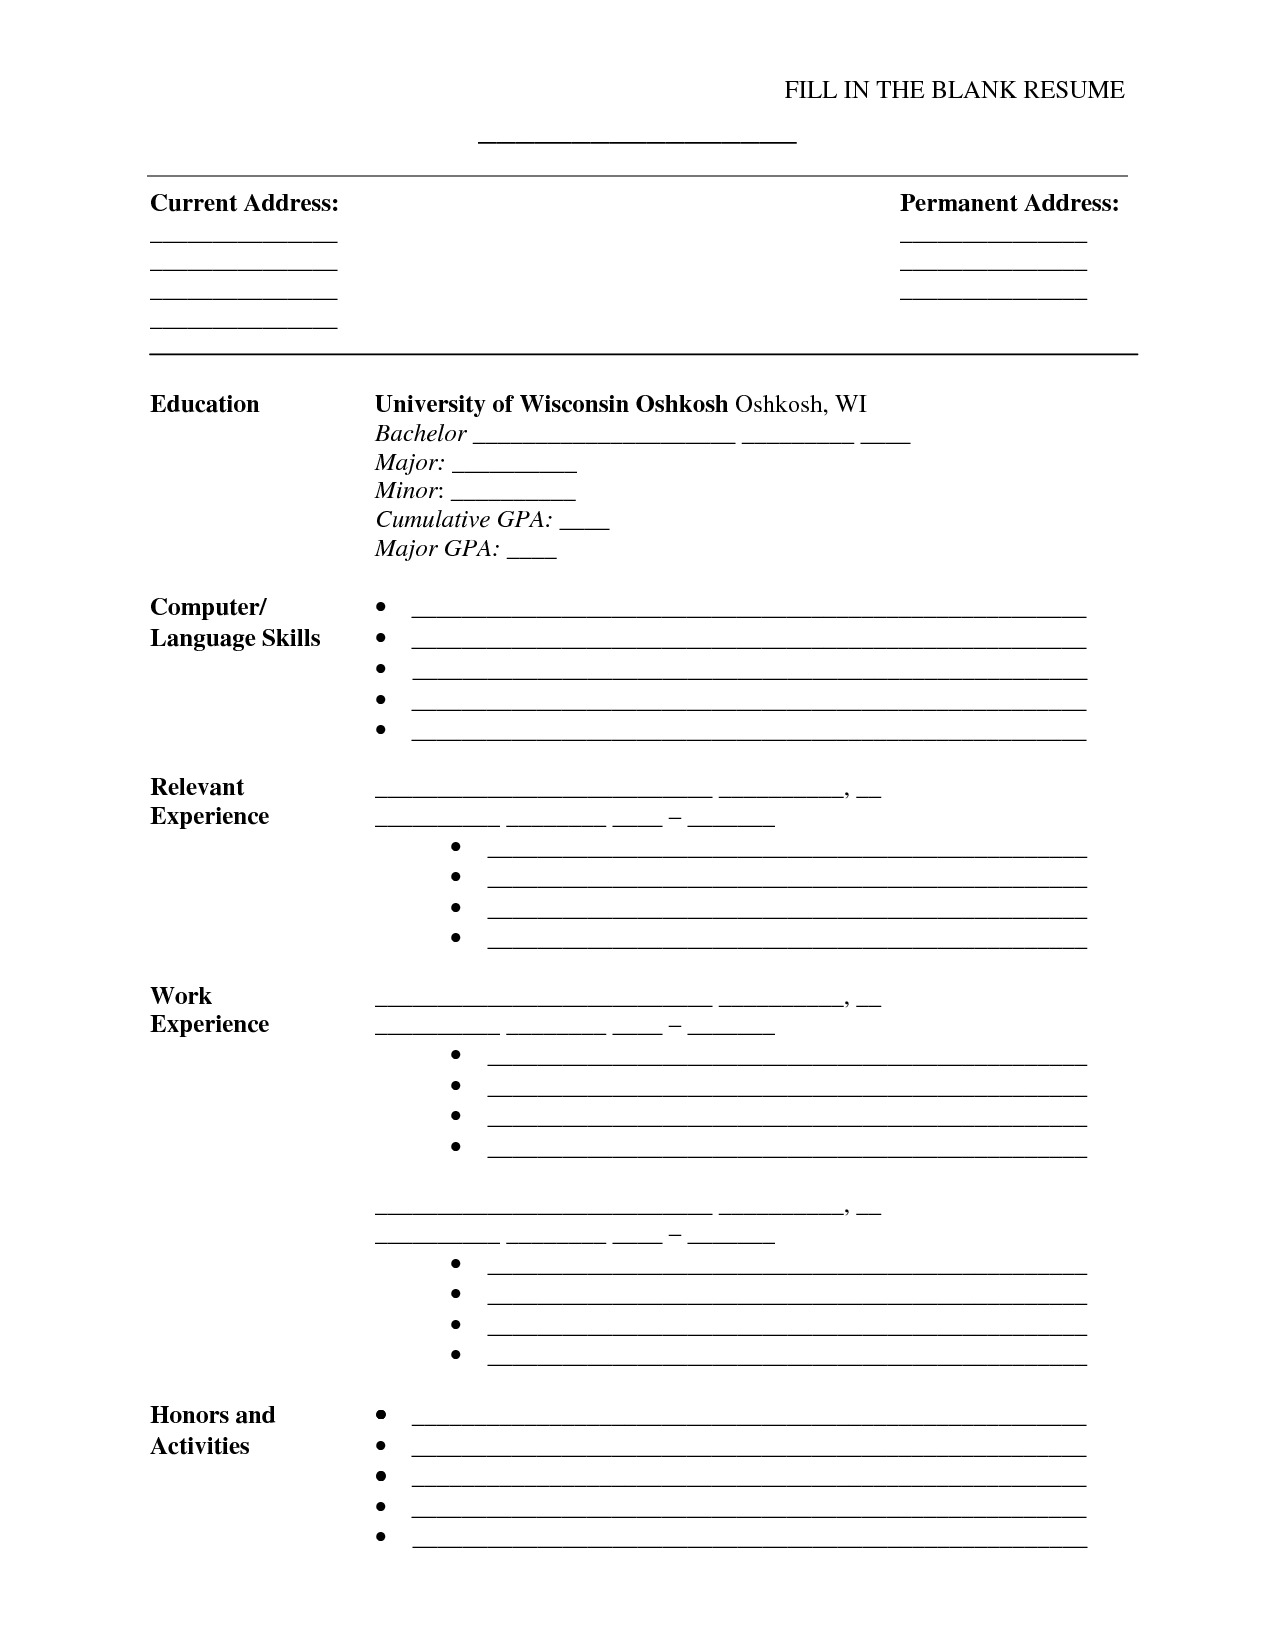 Fill In The Blank Resume PDF o fill